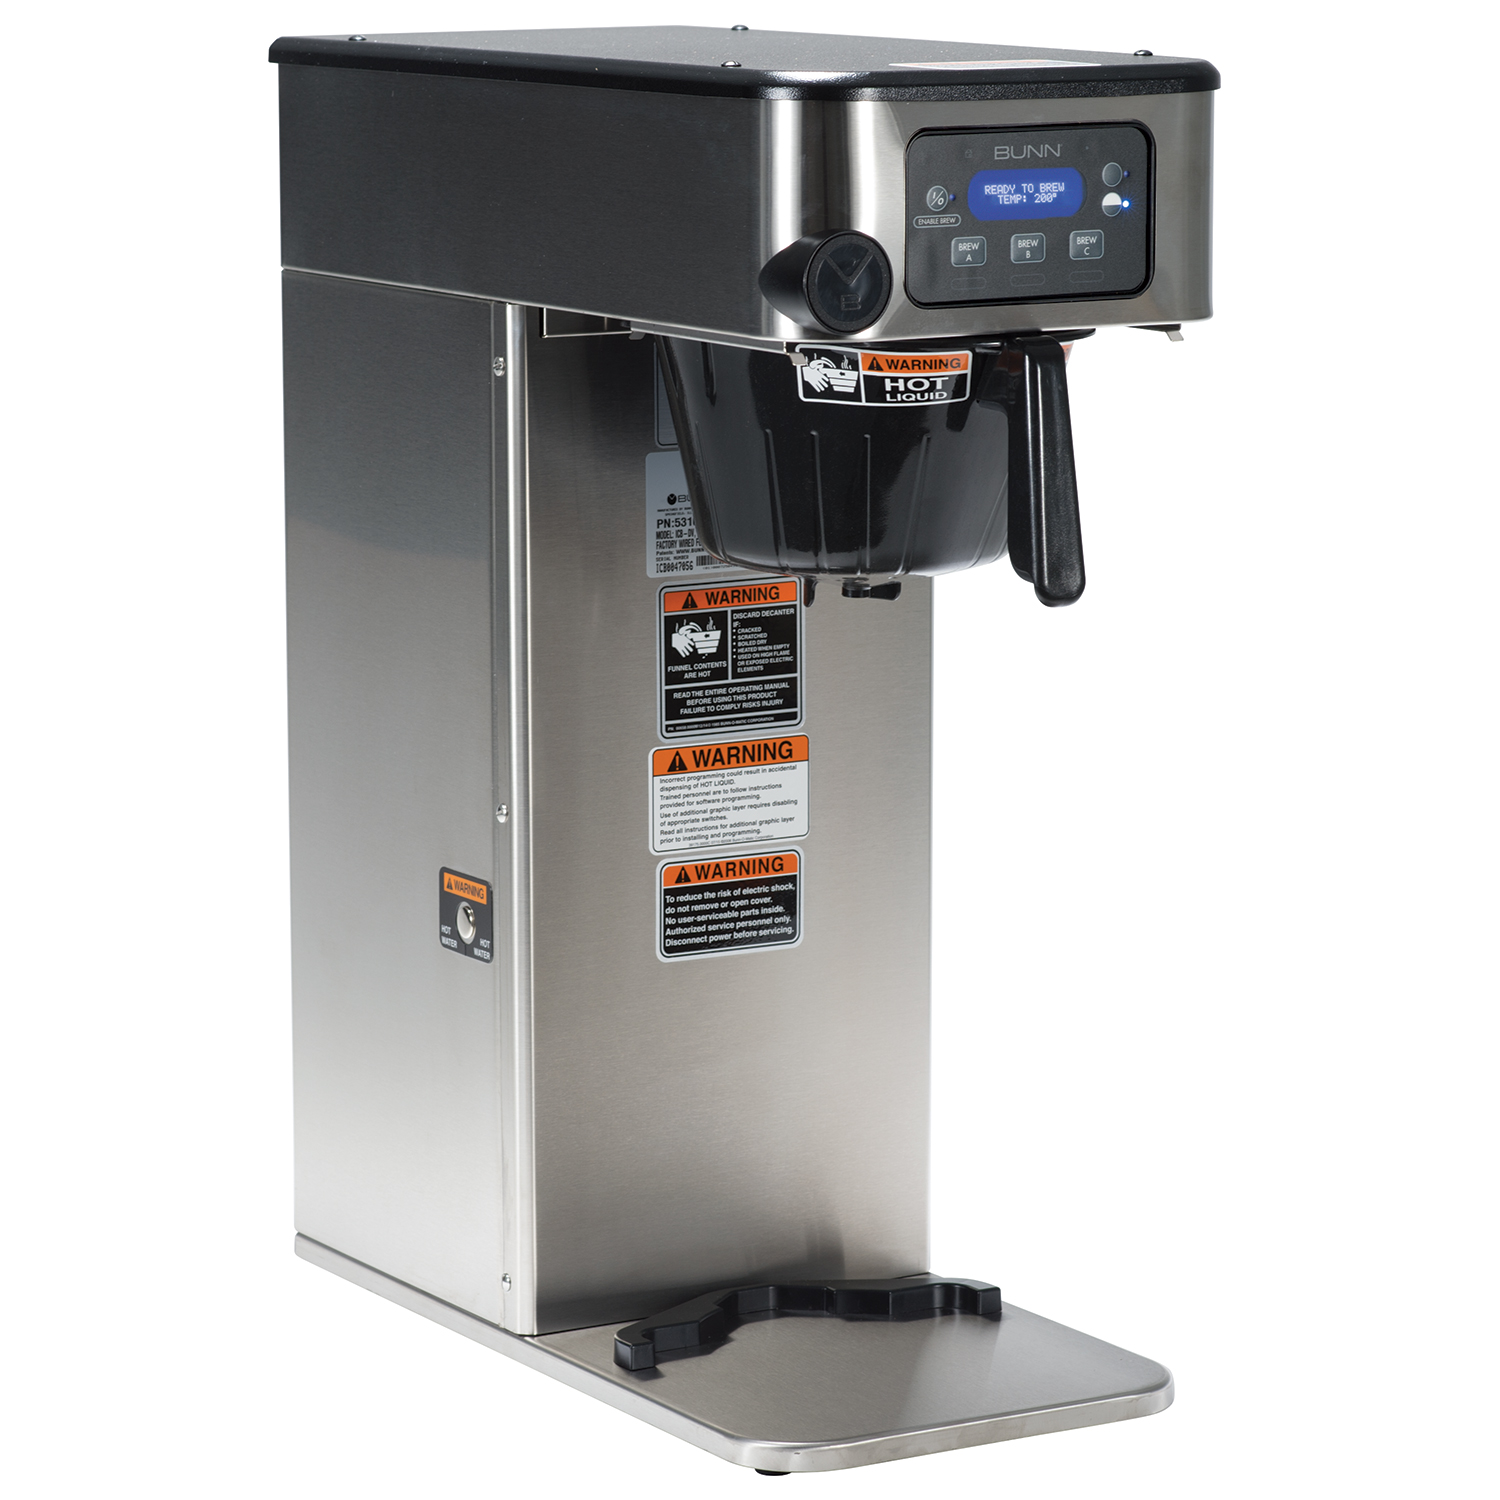 BUNN 53100.0000 coffee brewer for thermal server